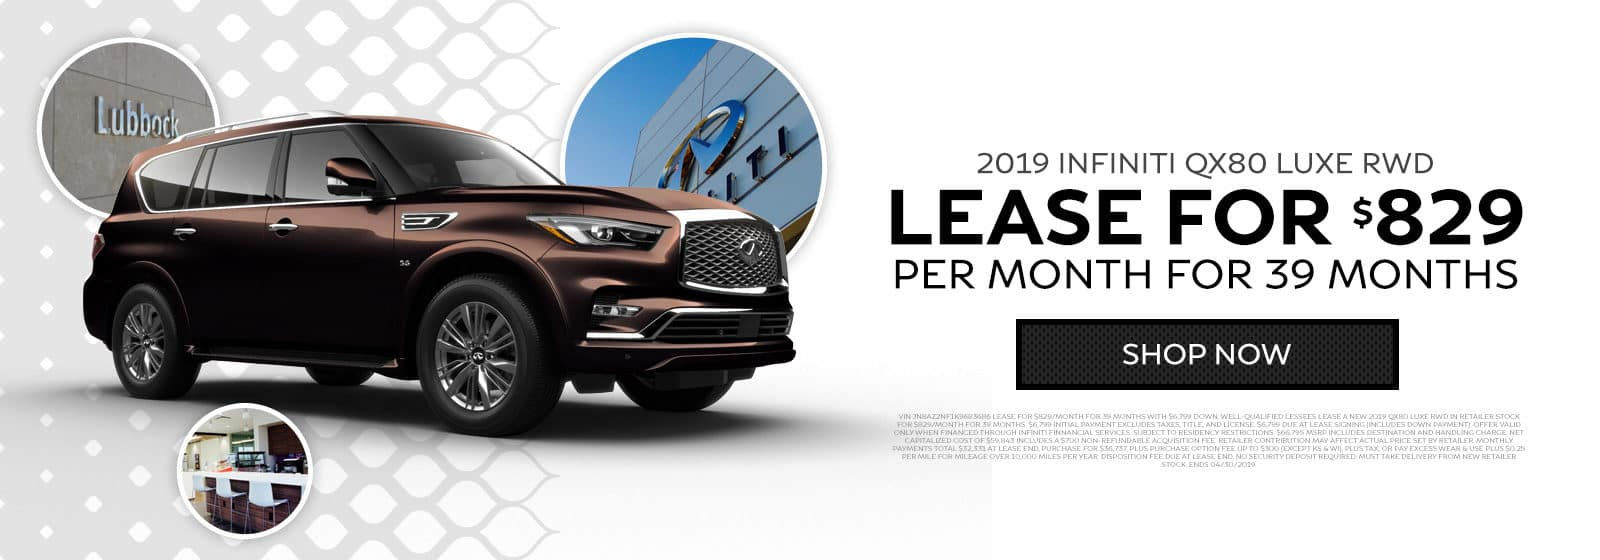 2019 INFINITI QX80 Luxe RWD - Lease for $829 per month for 39 months - Shop now